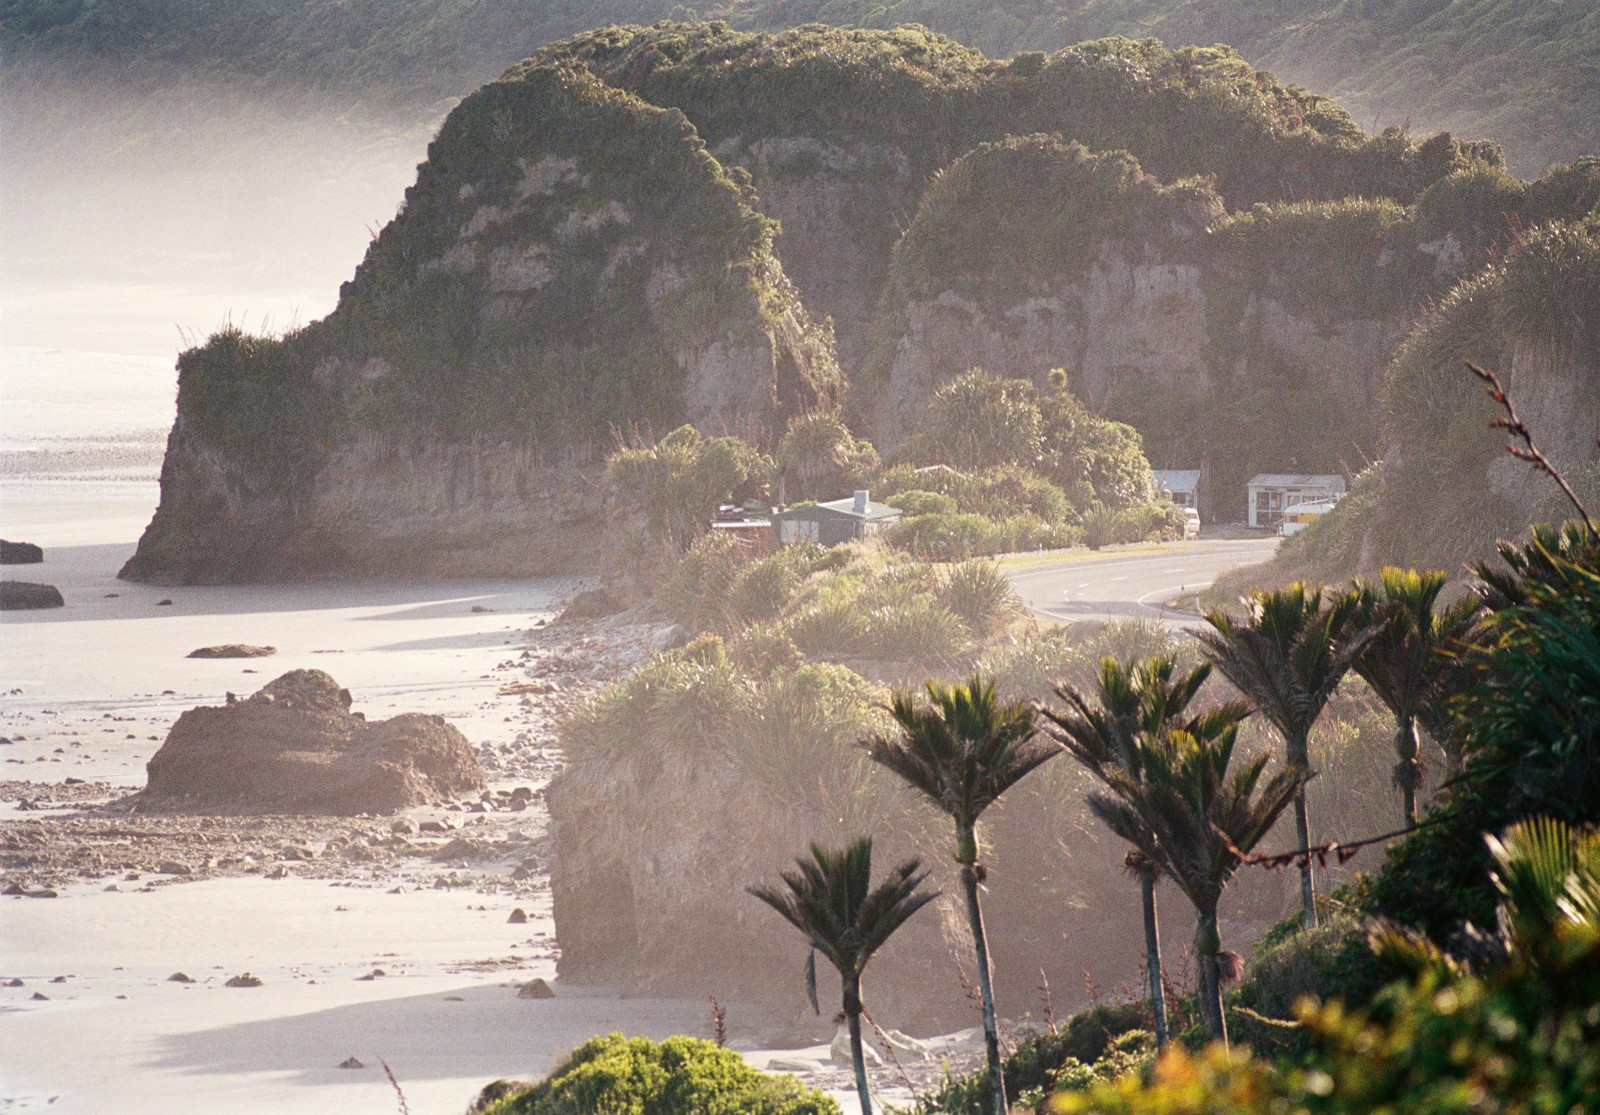 The landscape near Fox River has quintessential West Coast elements: limestone bluffs, a deserted beach, a handful of cribs and a grove of nikau. Though near the southernmost extent of their range, nikau here flourish in the warm, moist climate.